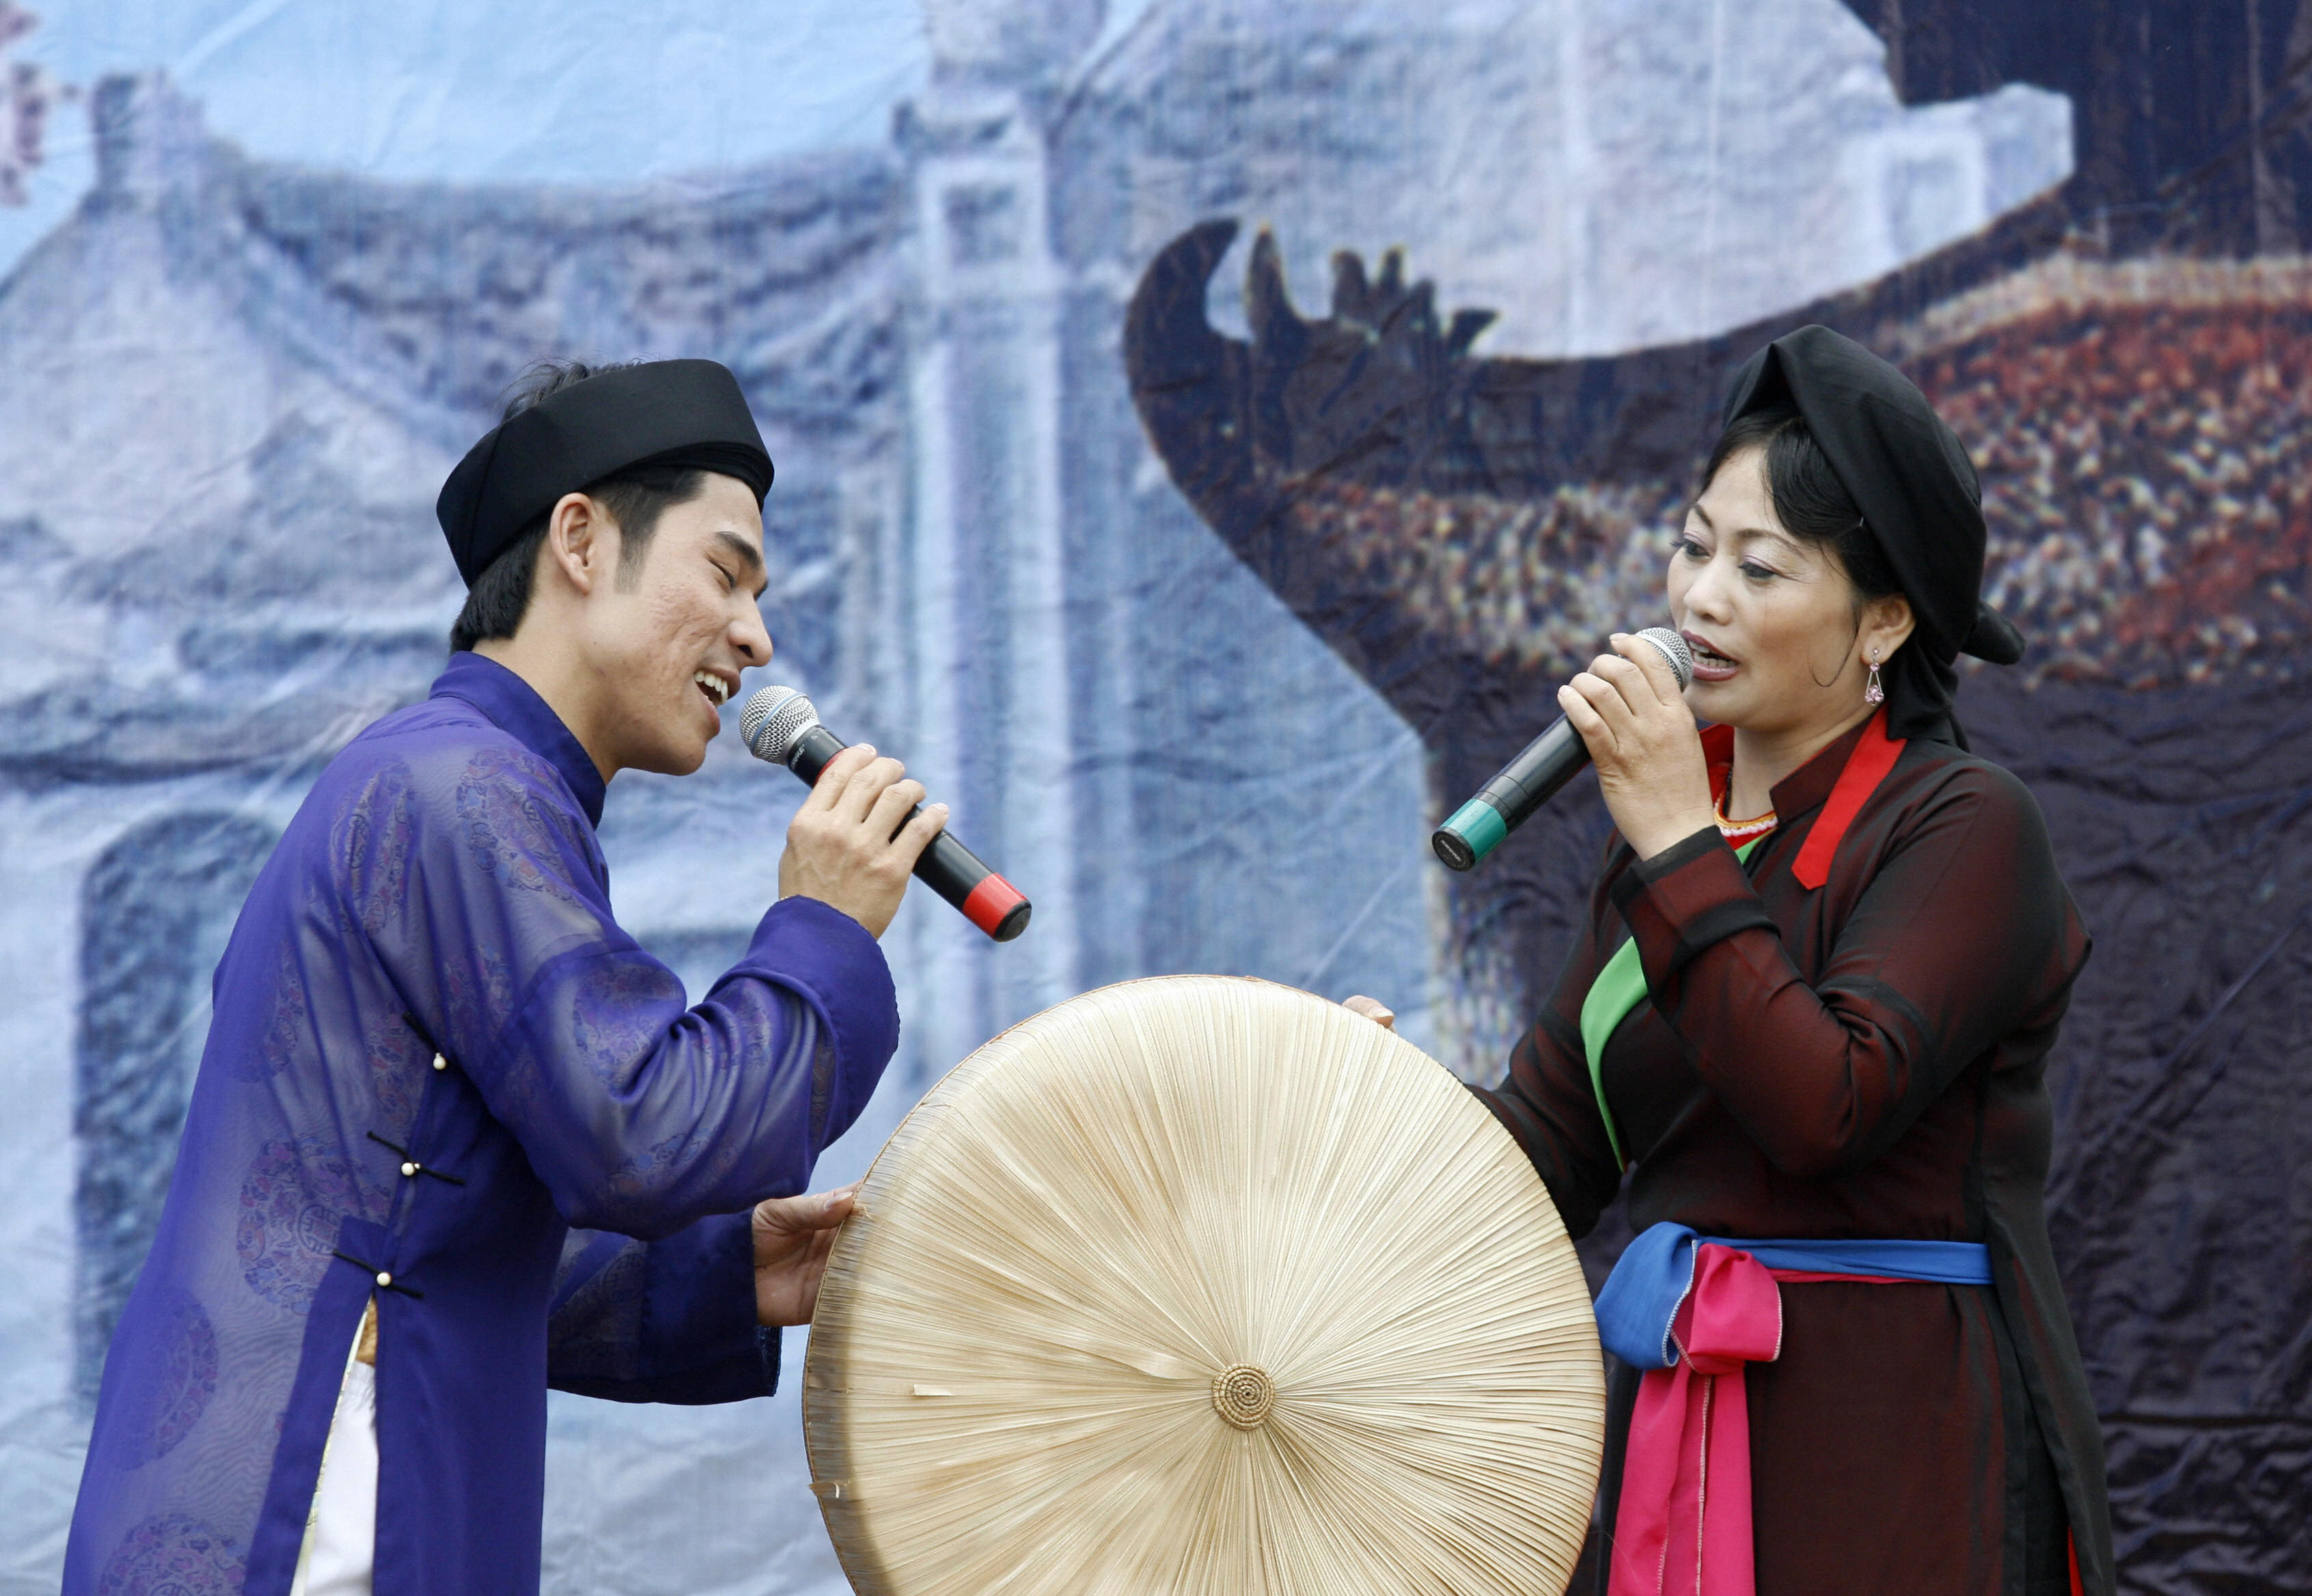 Two Quan Ho folk singers perform a love song during the Lim festival, Northern Vietnam